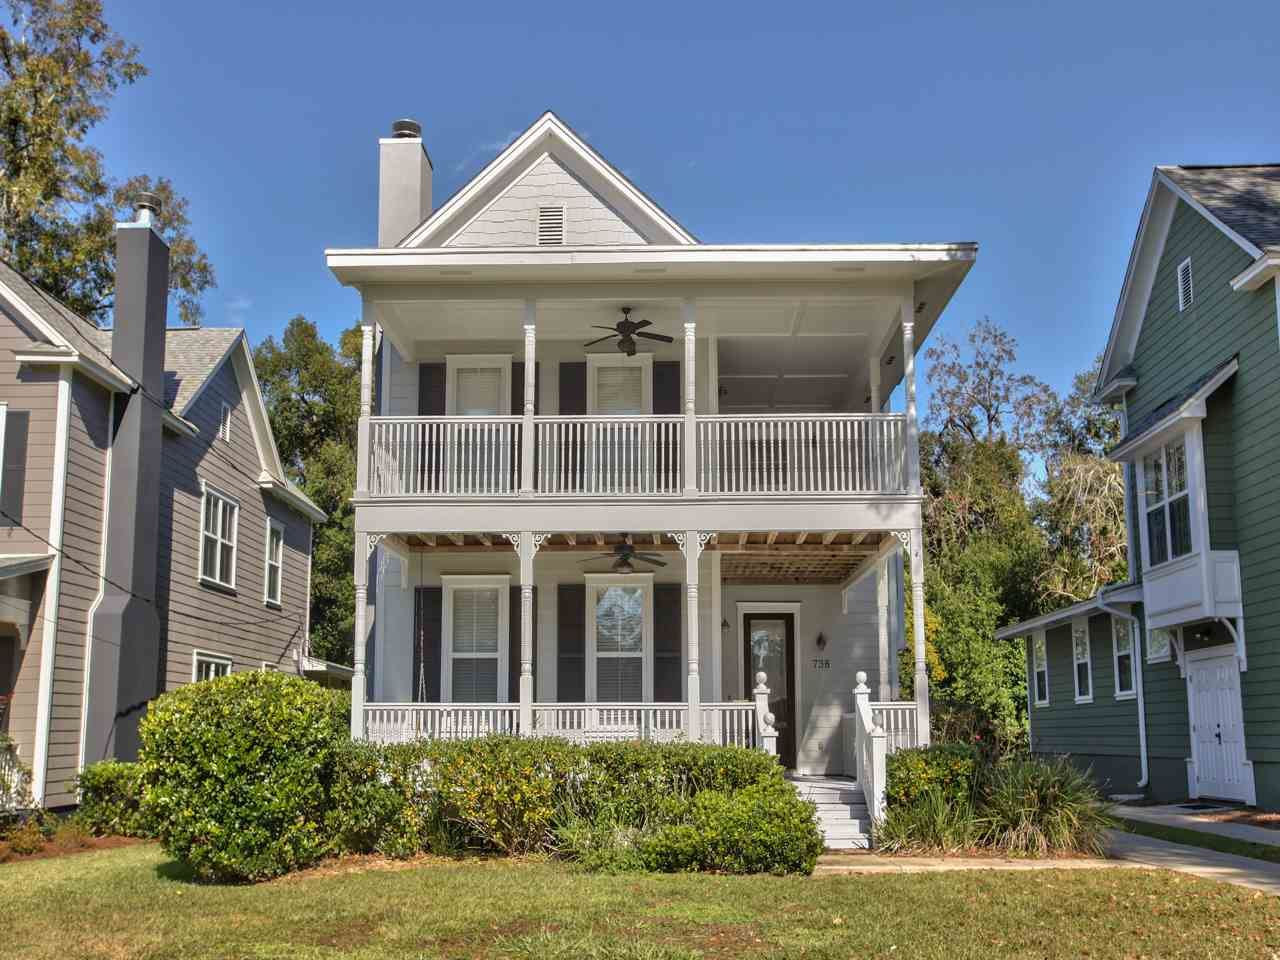 738 E COLLEGE Avenue, Tallahassee, FL 32301 - MLS#: 332299